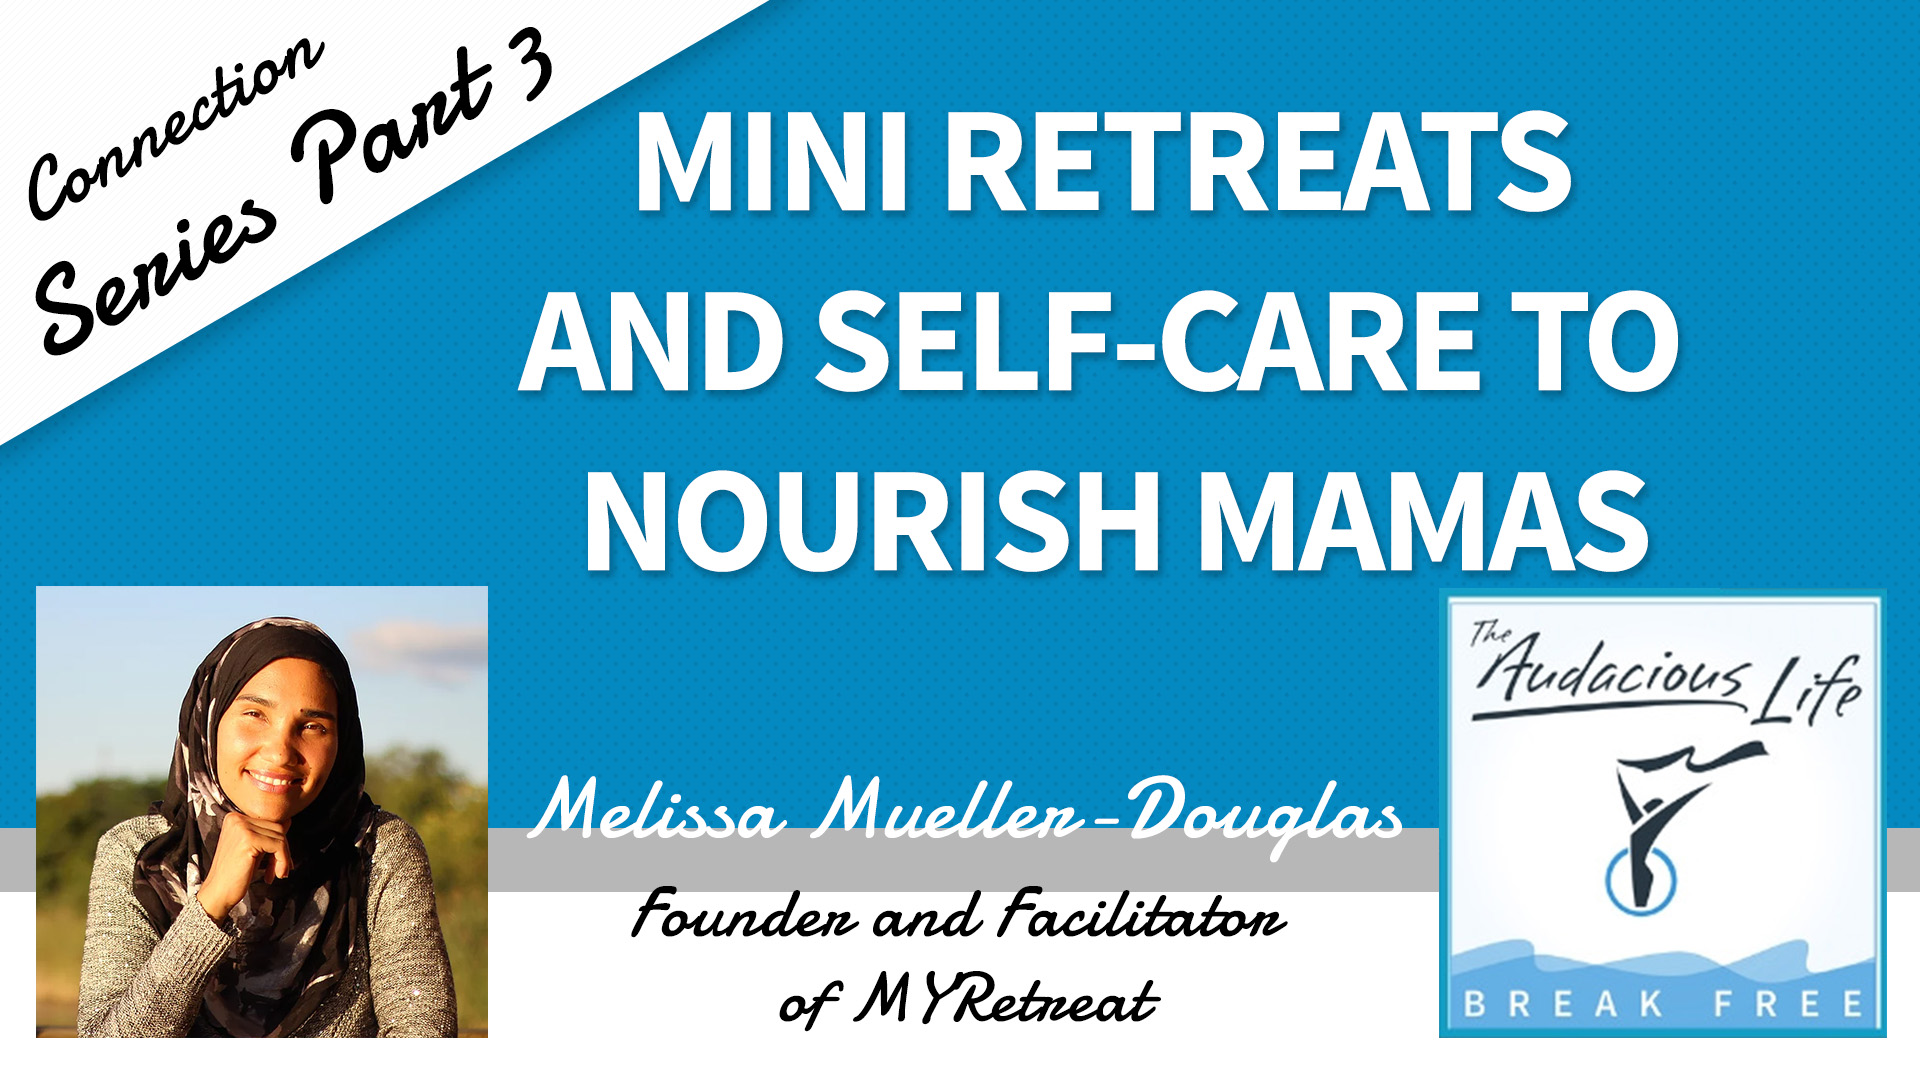 Mini Retreats and Self-Care to Nourish Mamas with Melissa Mueller-Douglas